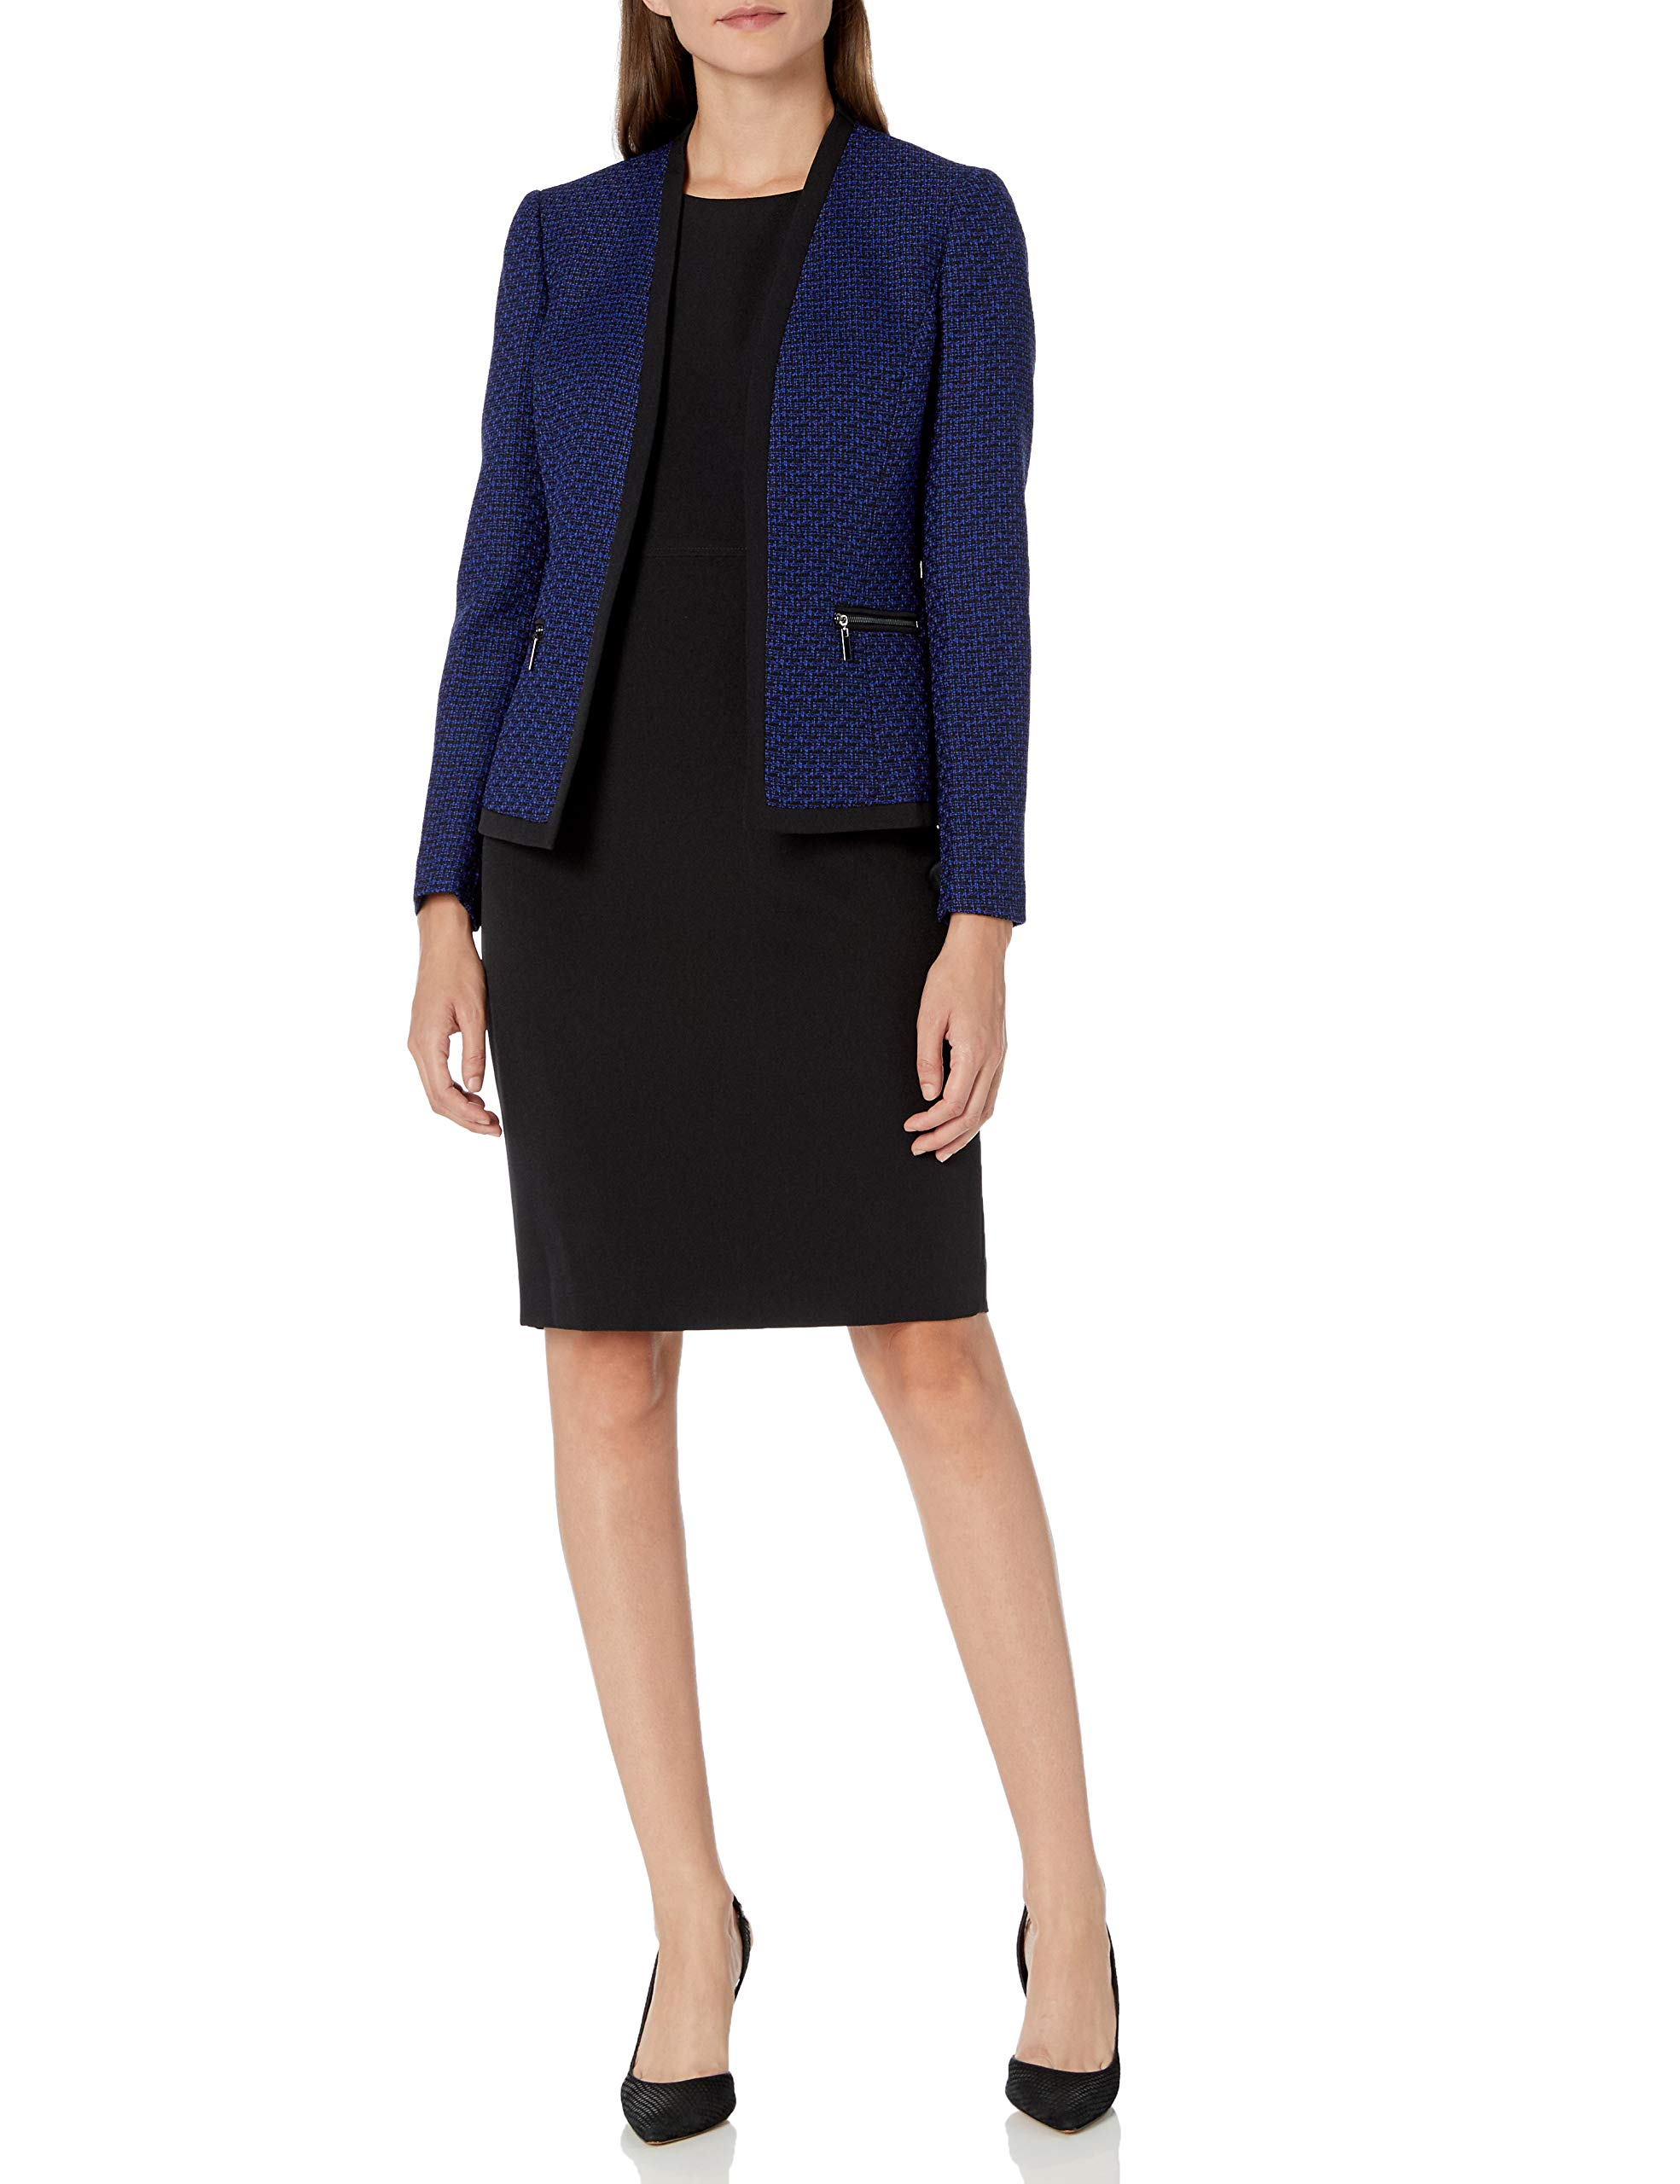 Le Suit Women's Two Toned Tweed Framed Jacket Sheath Dress Suit, Sapphire/Black, 14 by Le Suit